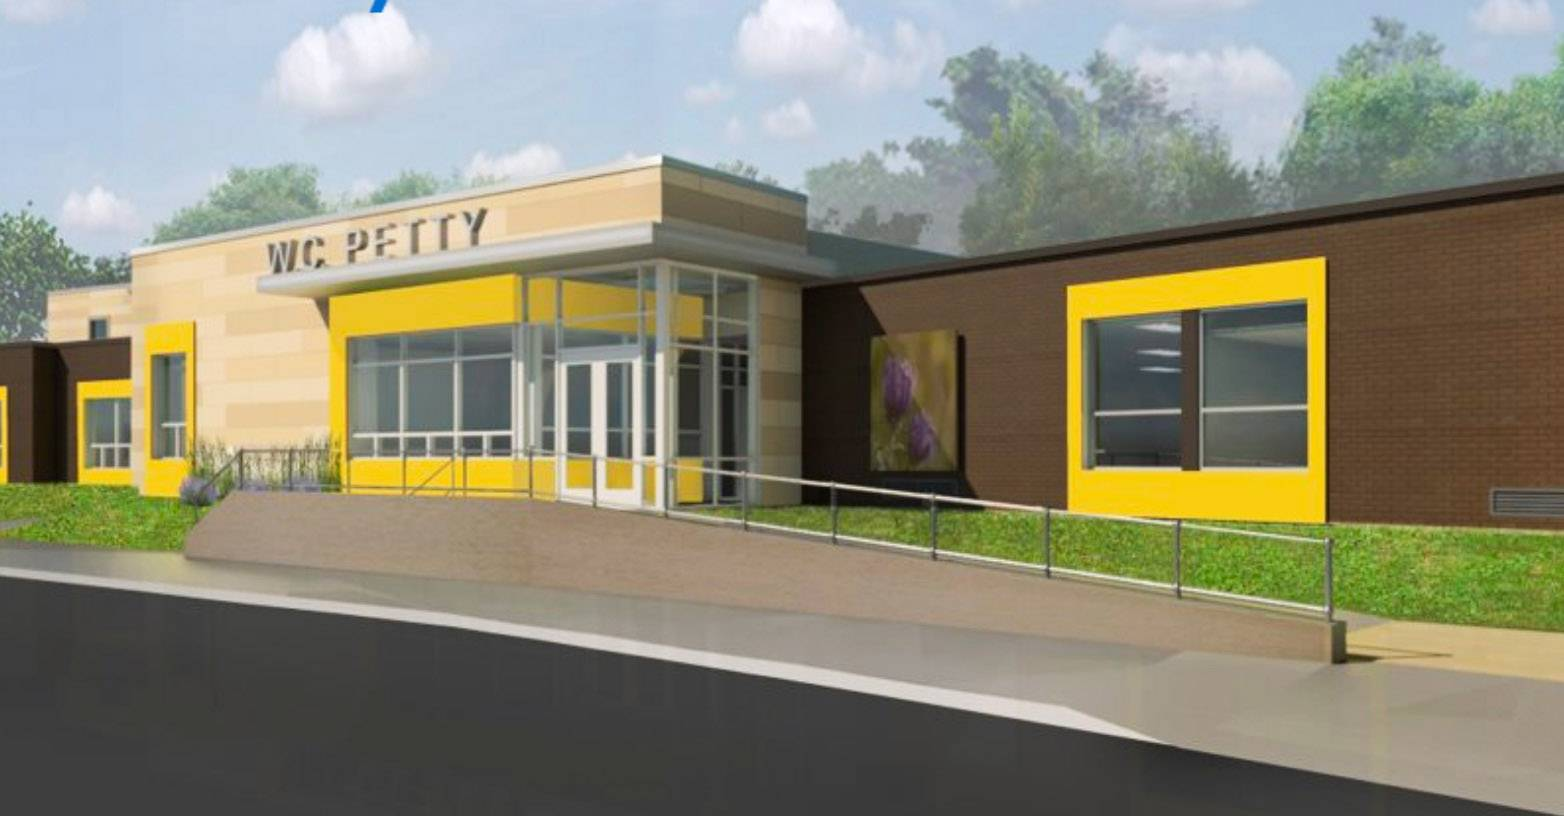 A rendering of W.C. Petty school after an addition in Antioch Elementary District 34.